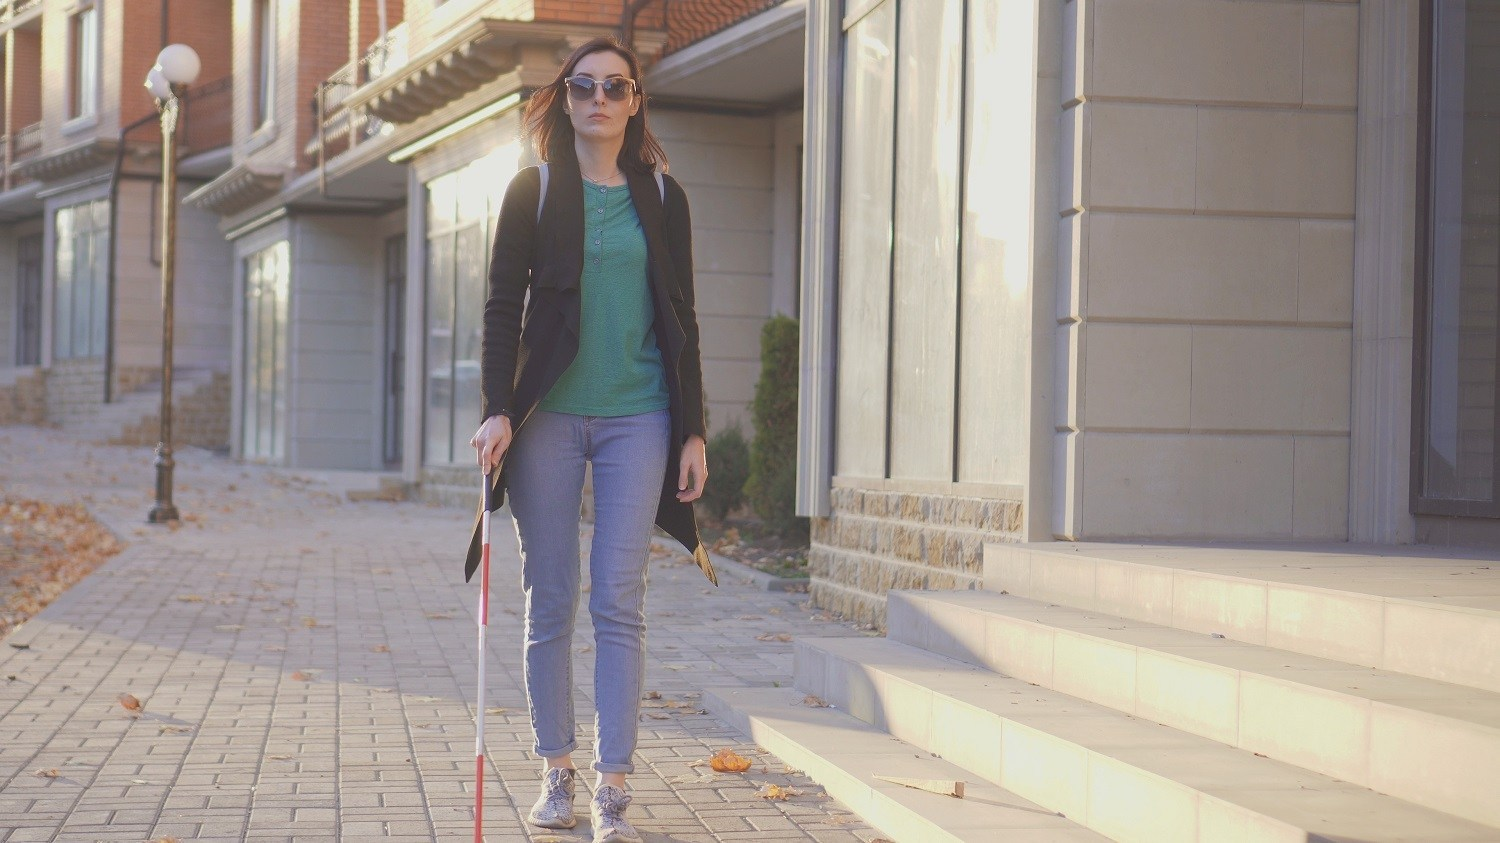 A woman walking on the street using a white cane